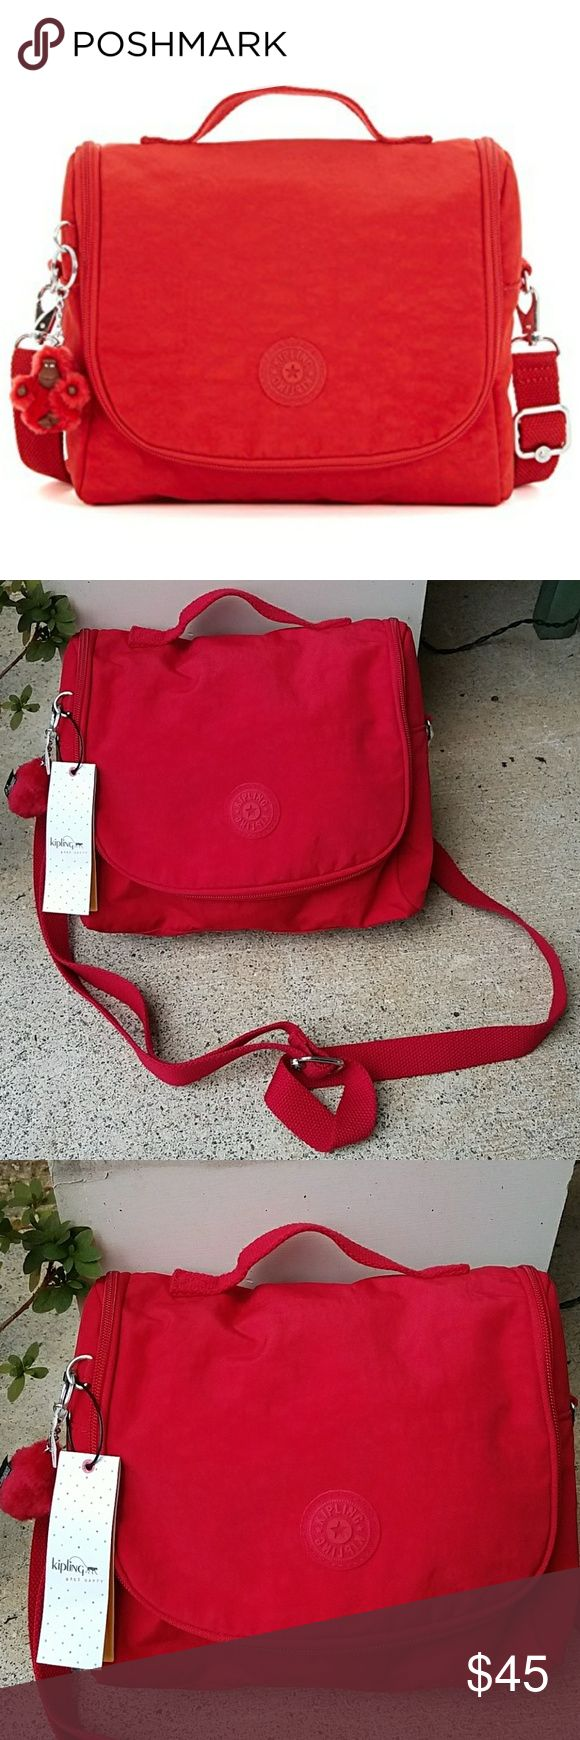 NWT!! Kipling Cherry Red Insulated Lunch Bag NWT!!  Back  Description  Kipling's reinvented lunch bag is tailored with an insulated interior, an adjustable strap, an interior net lining and added interior space that makes it perfect for carrying your lunch to school or work. Size: 9 x 8 x 4.75 inches, Weight: 0.6 lb Kipling Bags